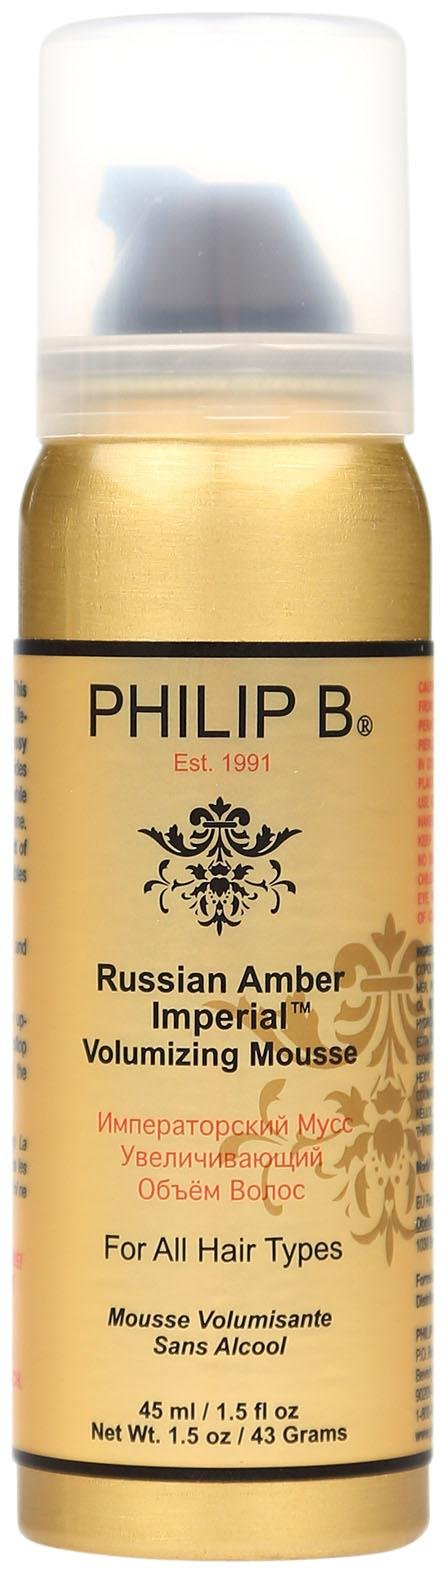 Philip B. Russian Amber Imperial™ Volumizing Mousse (1.5 Oz)